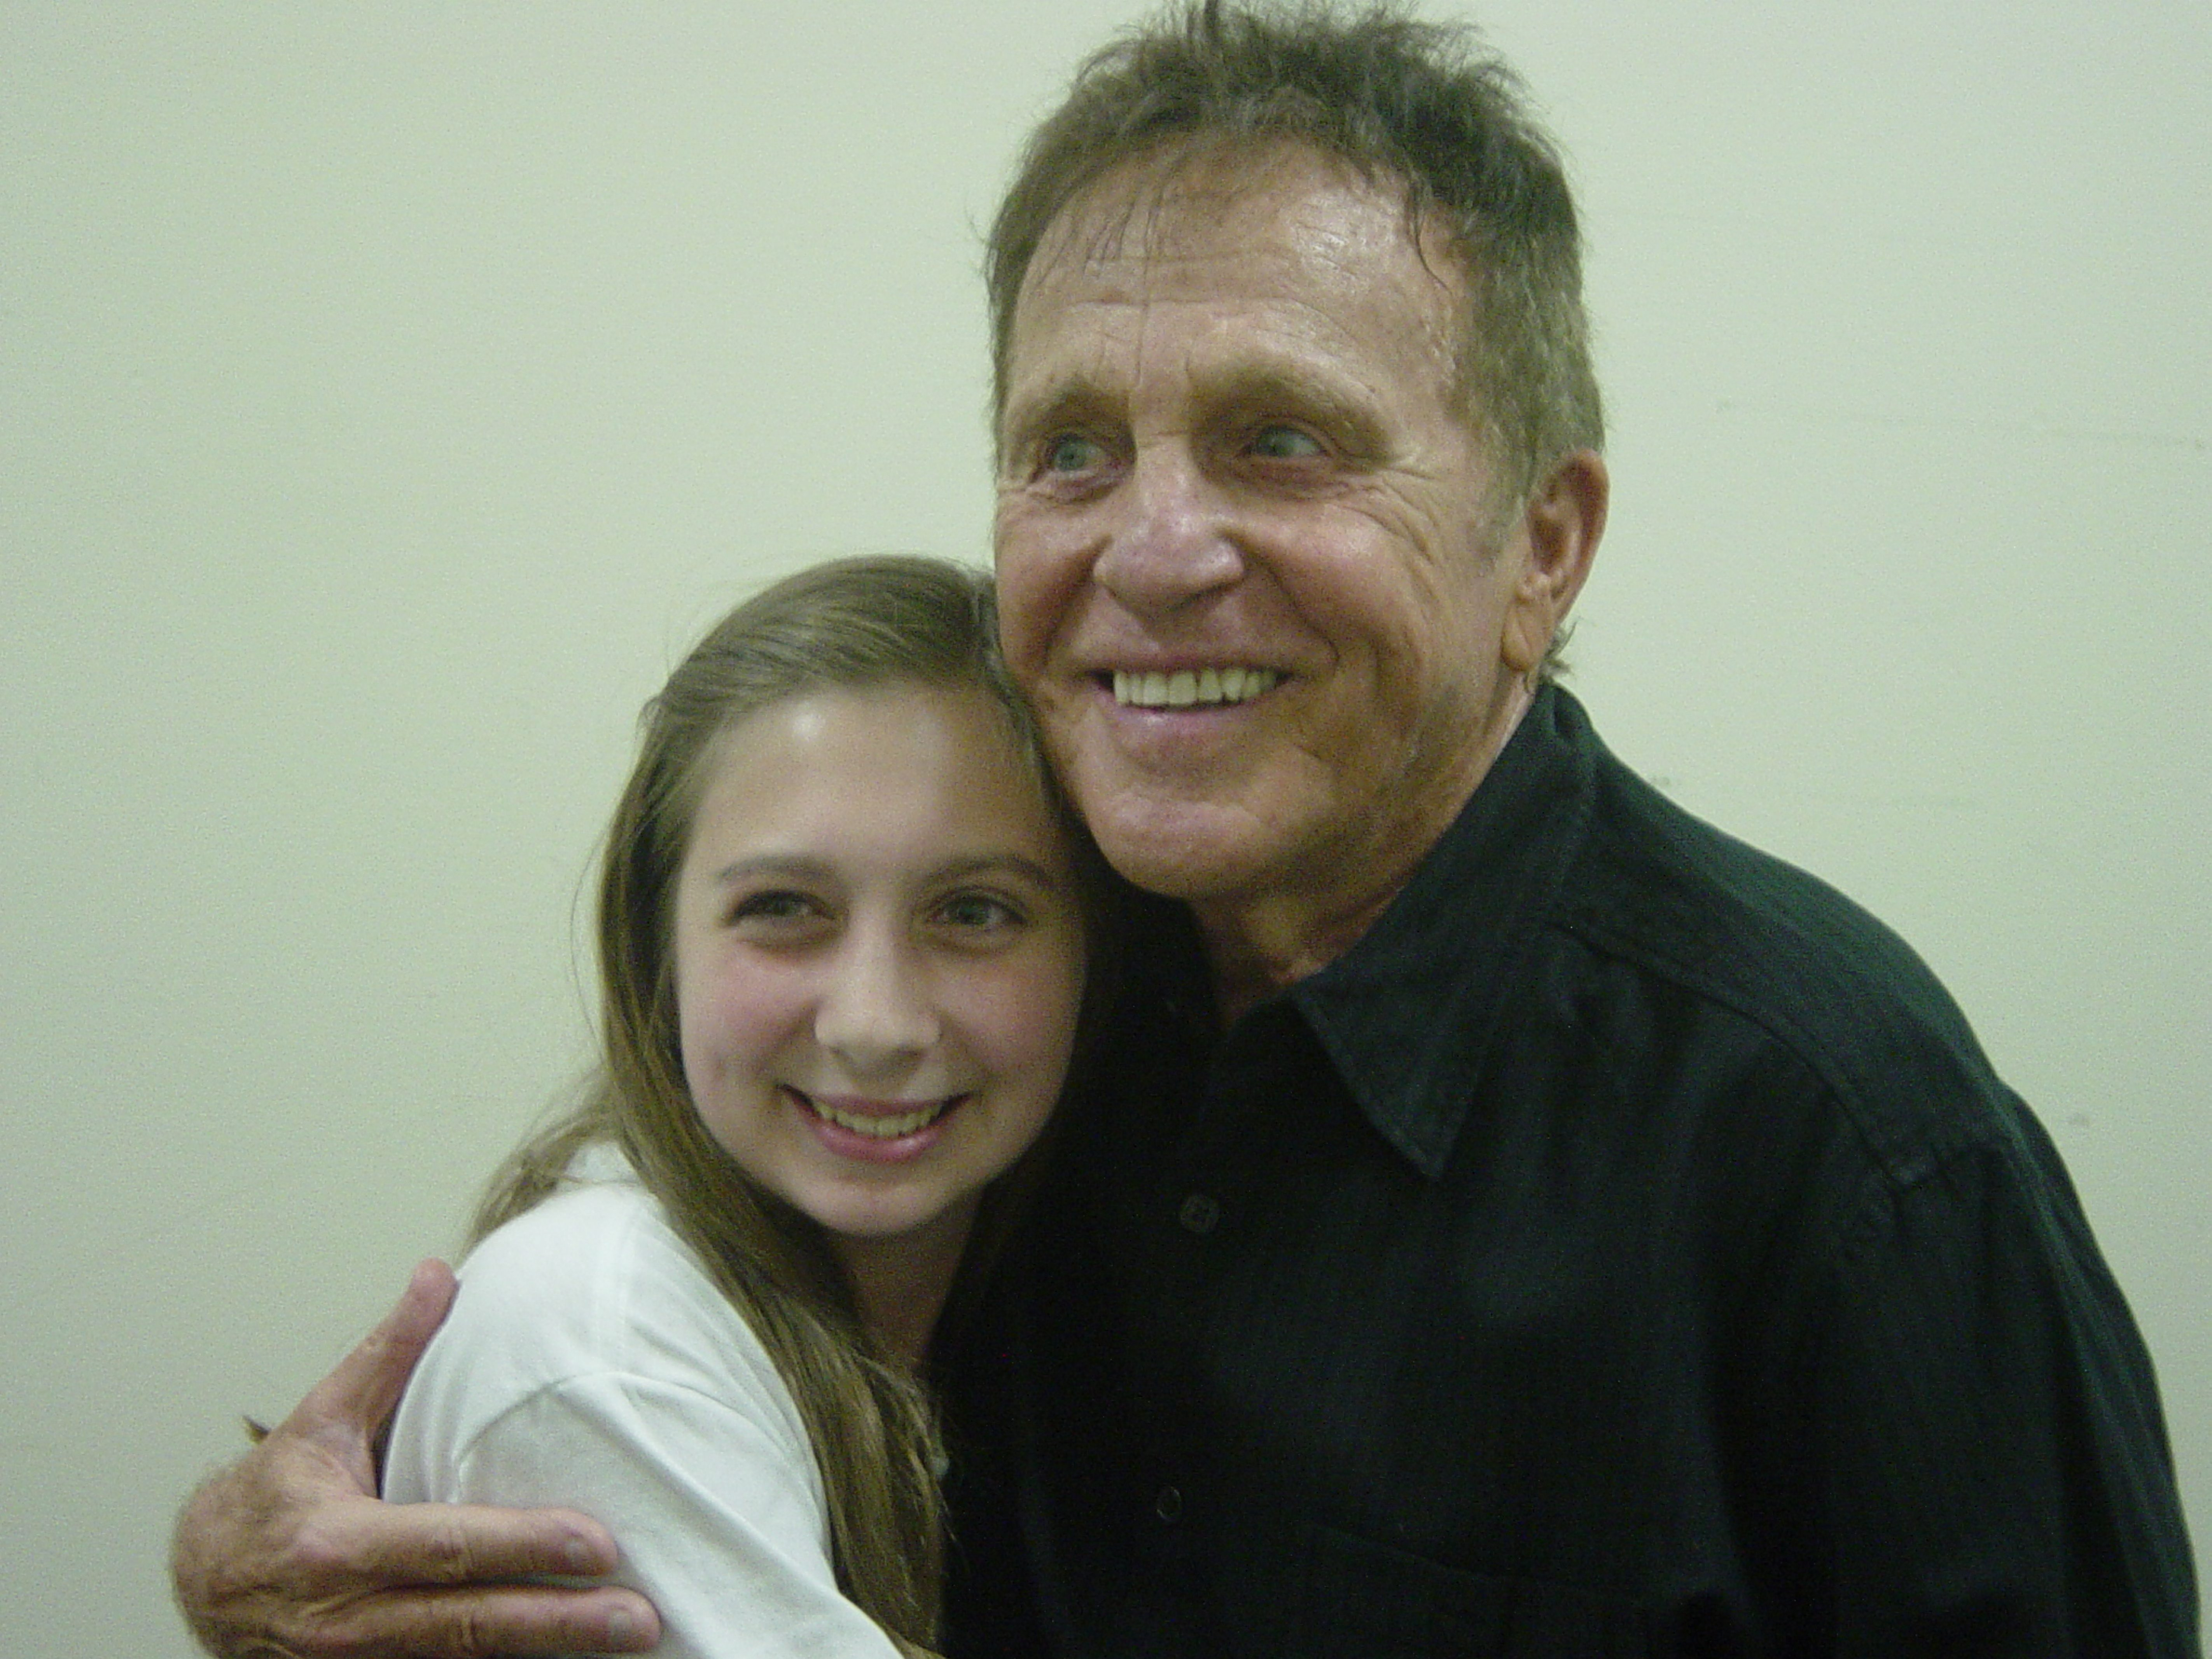 Kayla May, a freshman at Sacred Heart Academy, met one of her favorite crooners, Bobby Vinton, when he was in town last year.